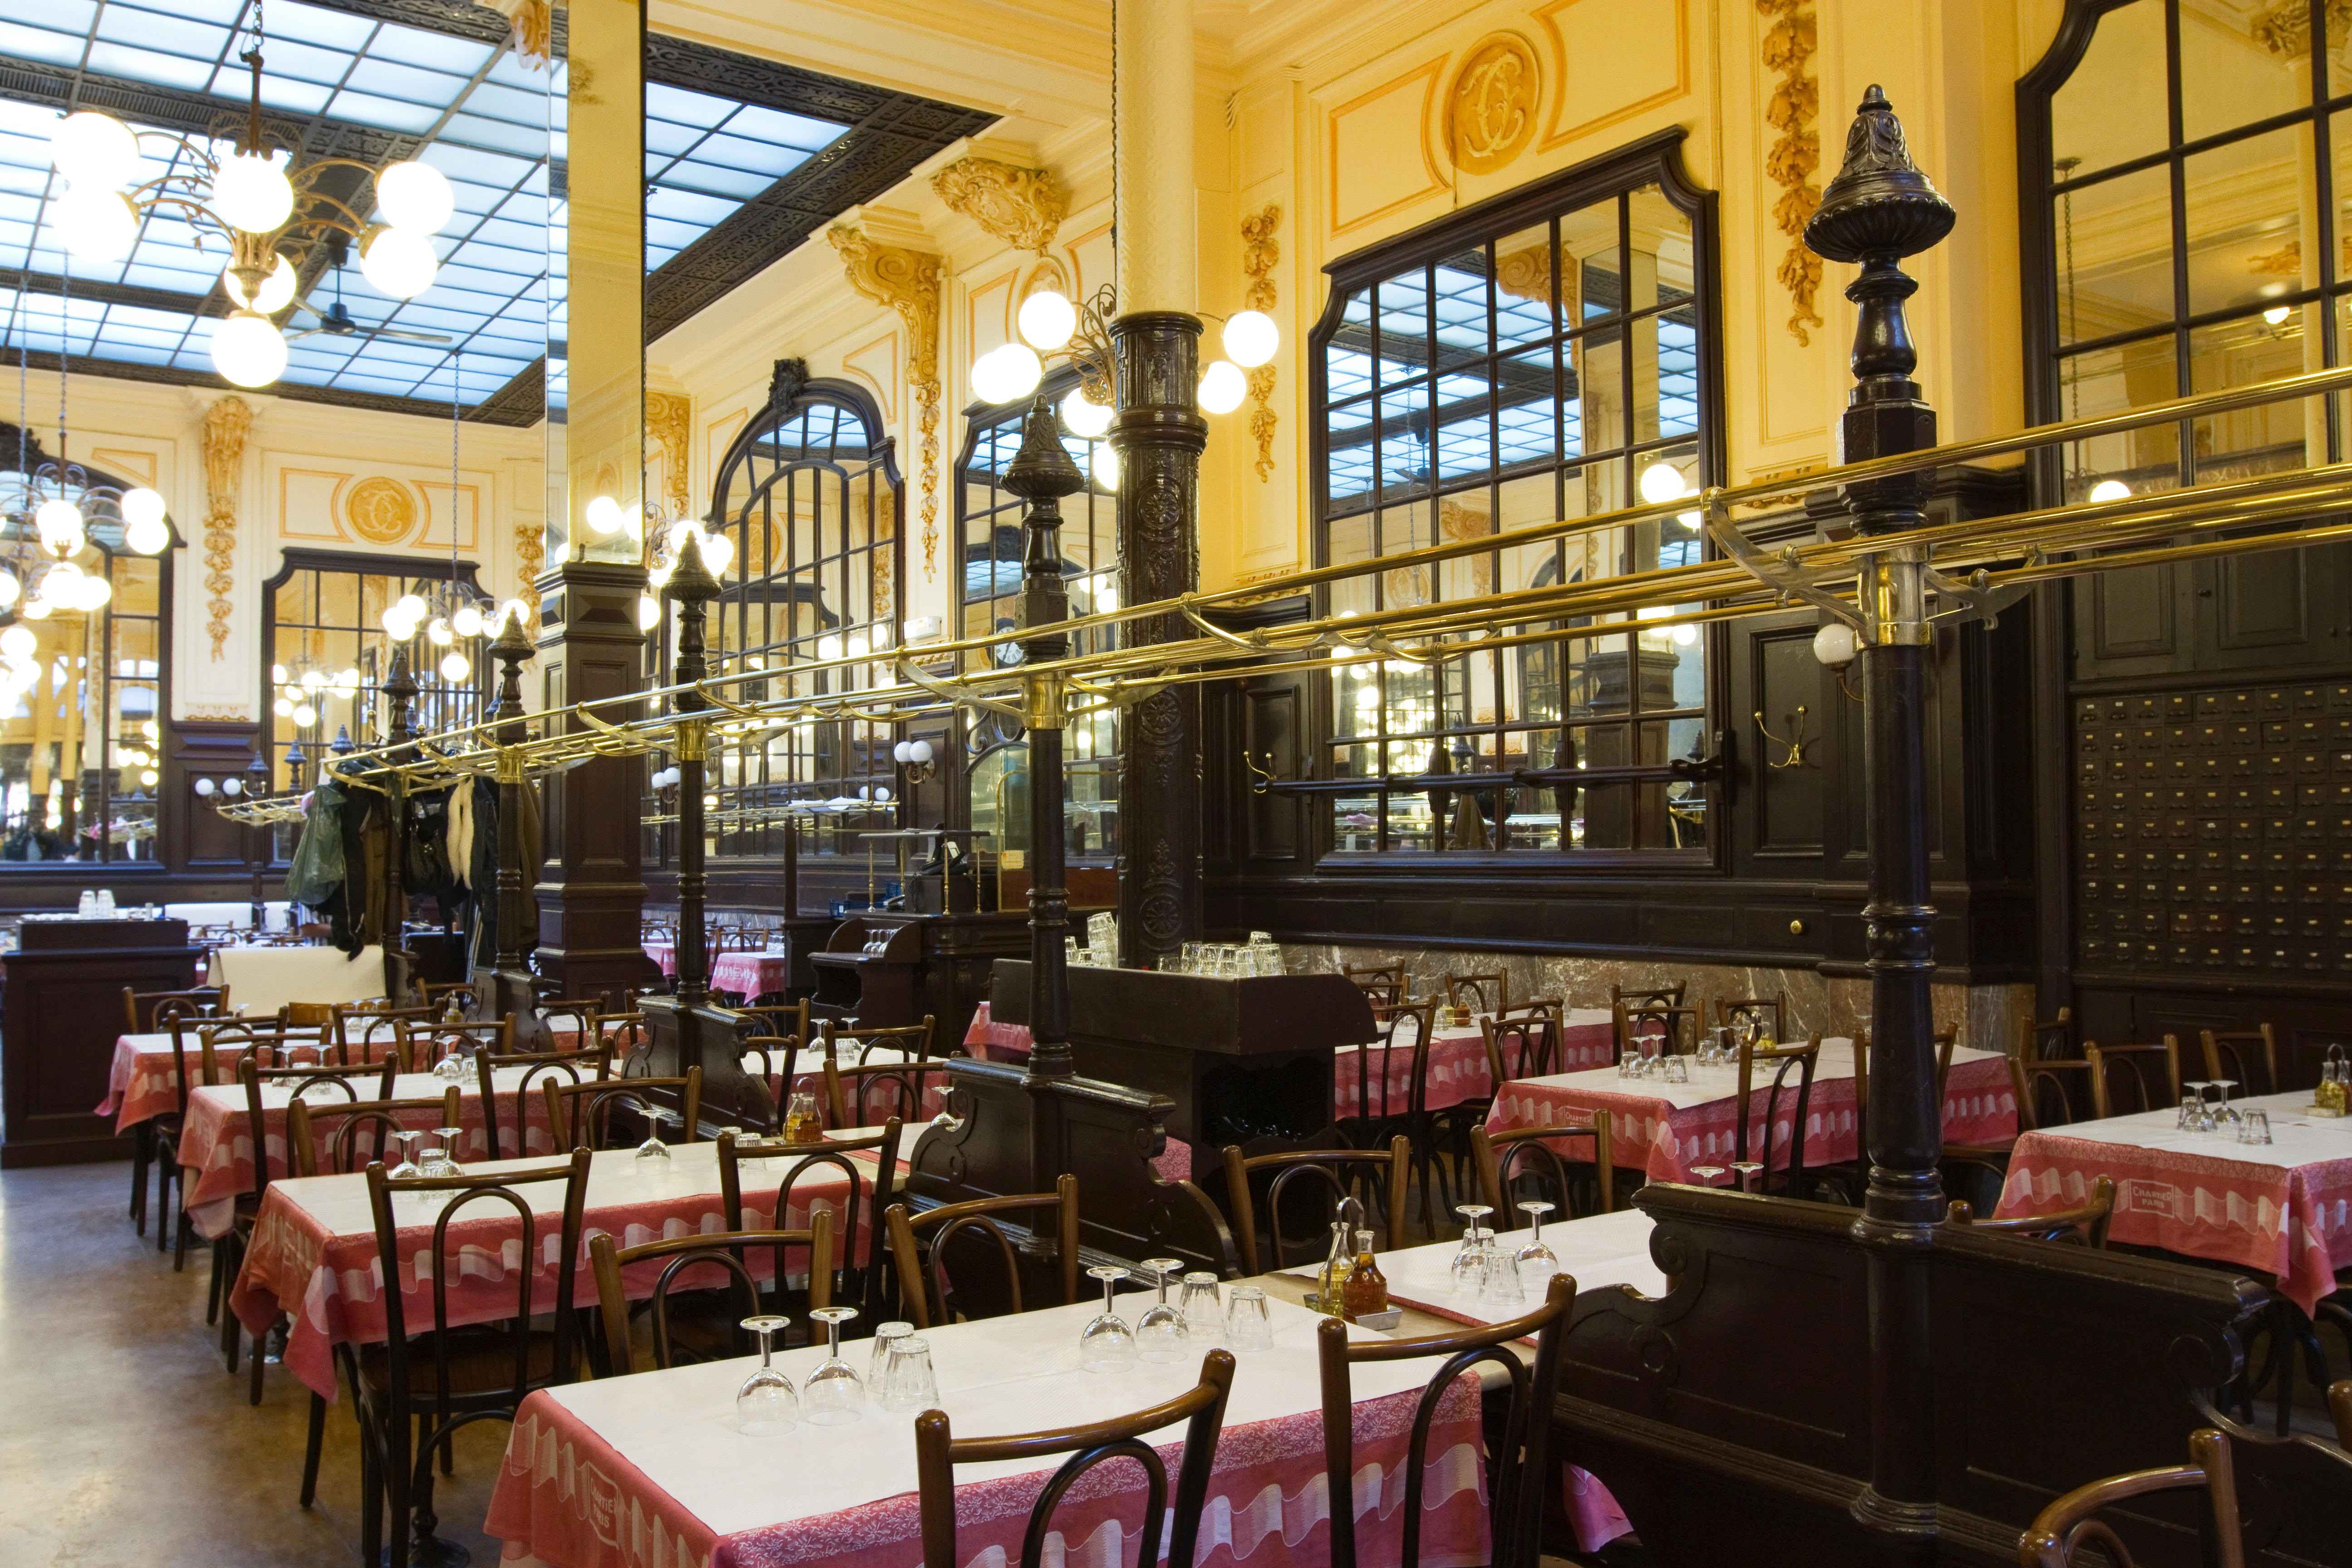 The Best Budget Restaurants in Paris